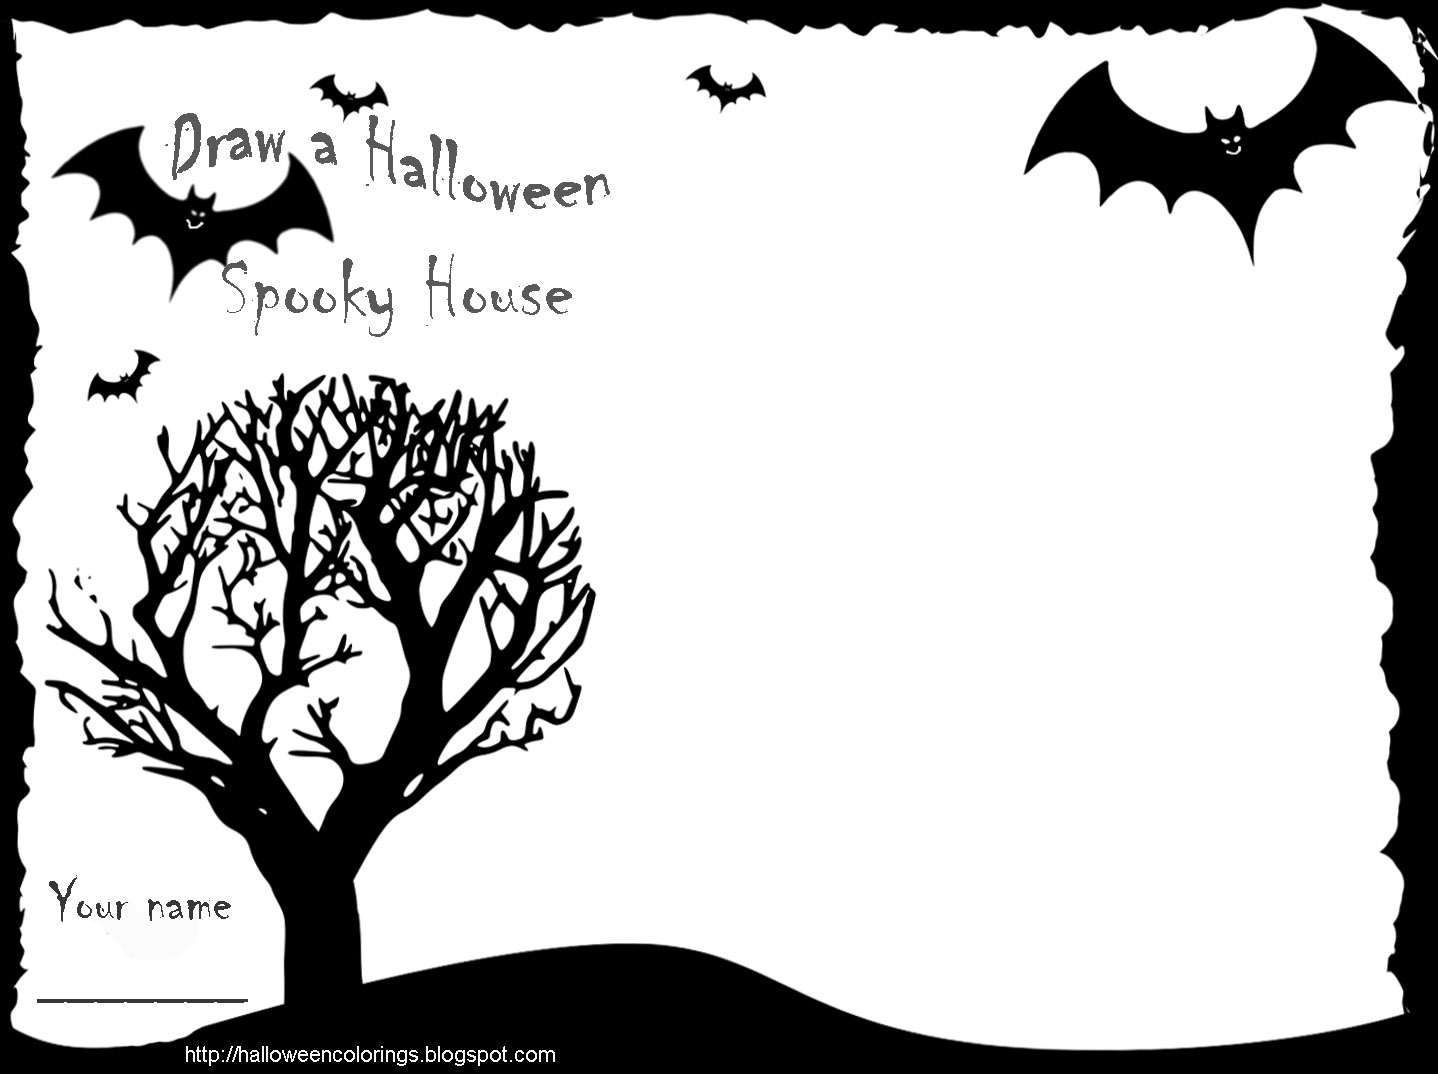 halloween draw your own activity sheet - Halloween Activity Sheets